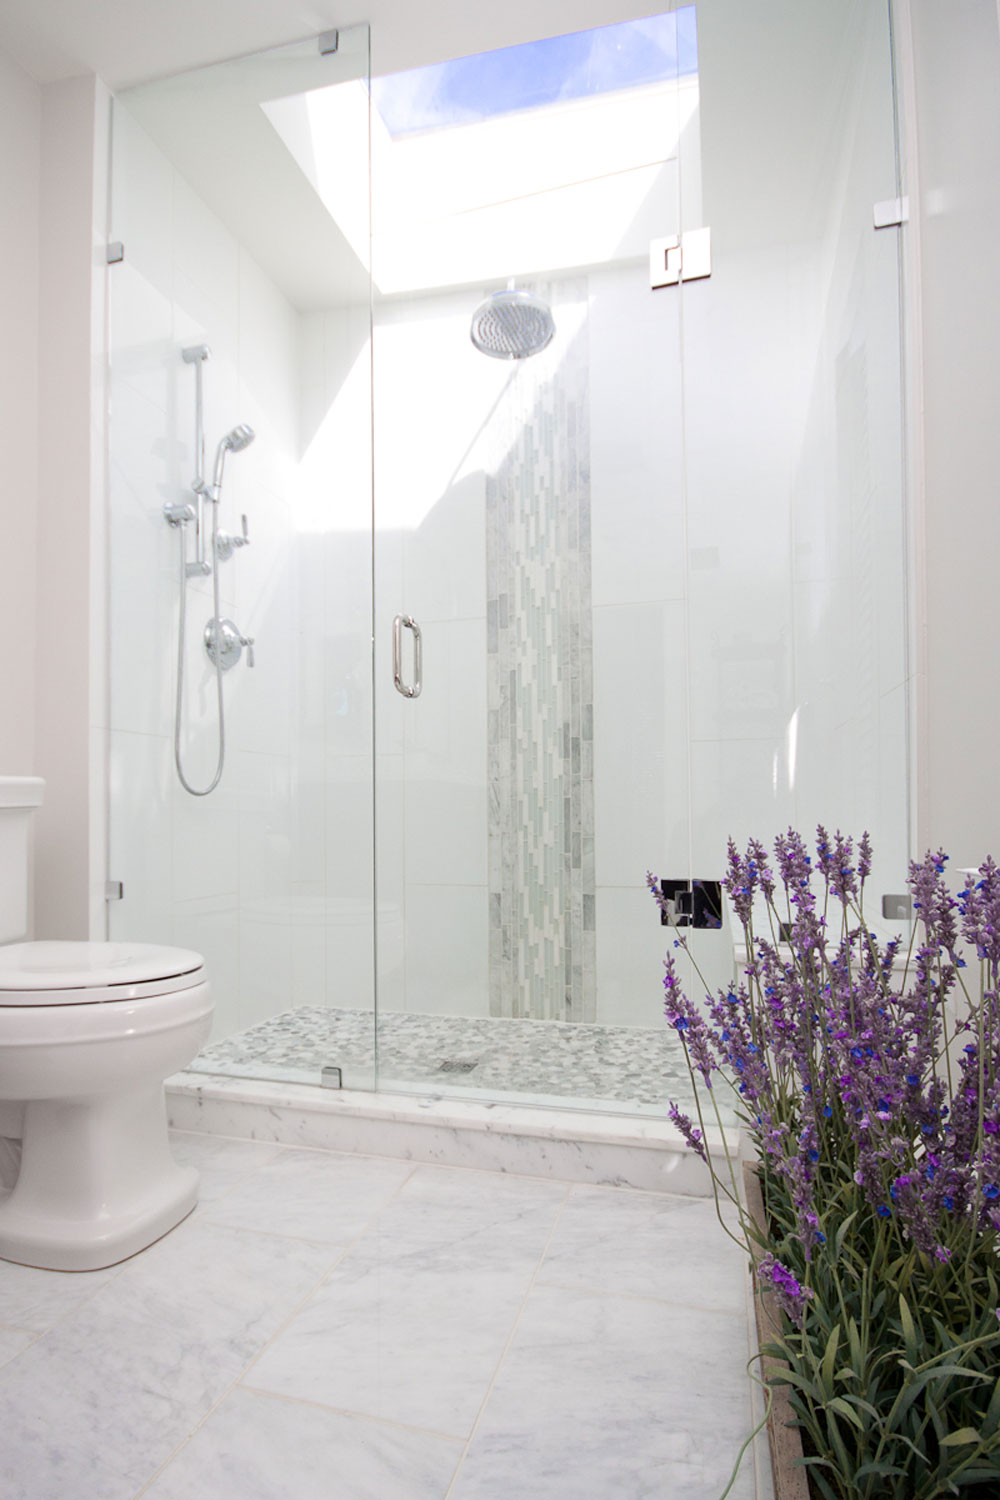 Bathrooms With Skylights That Will Make You Reconsider How You Design Them 12